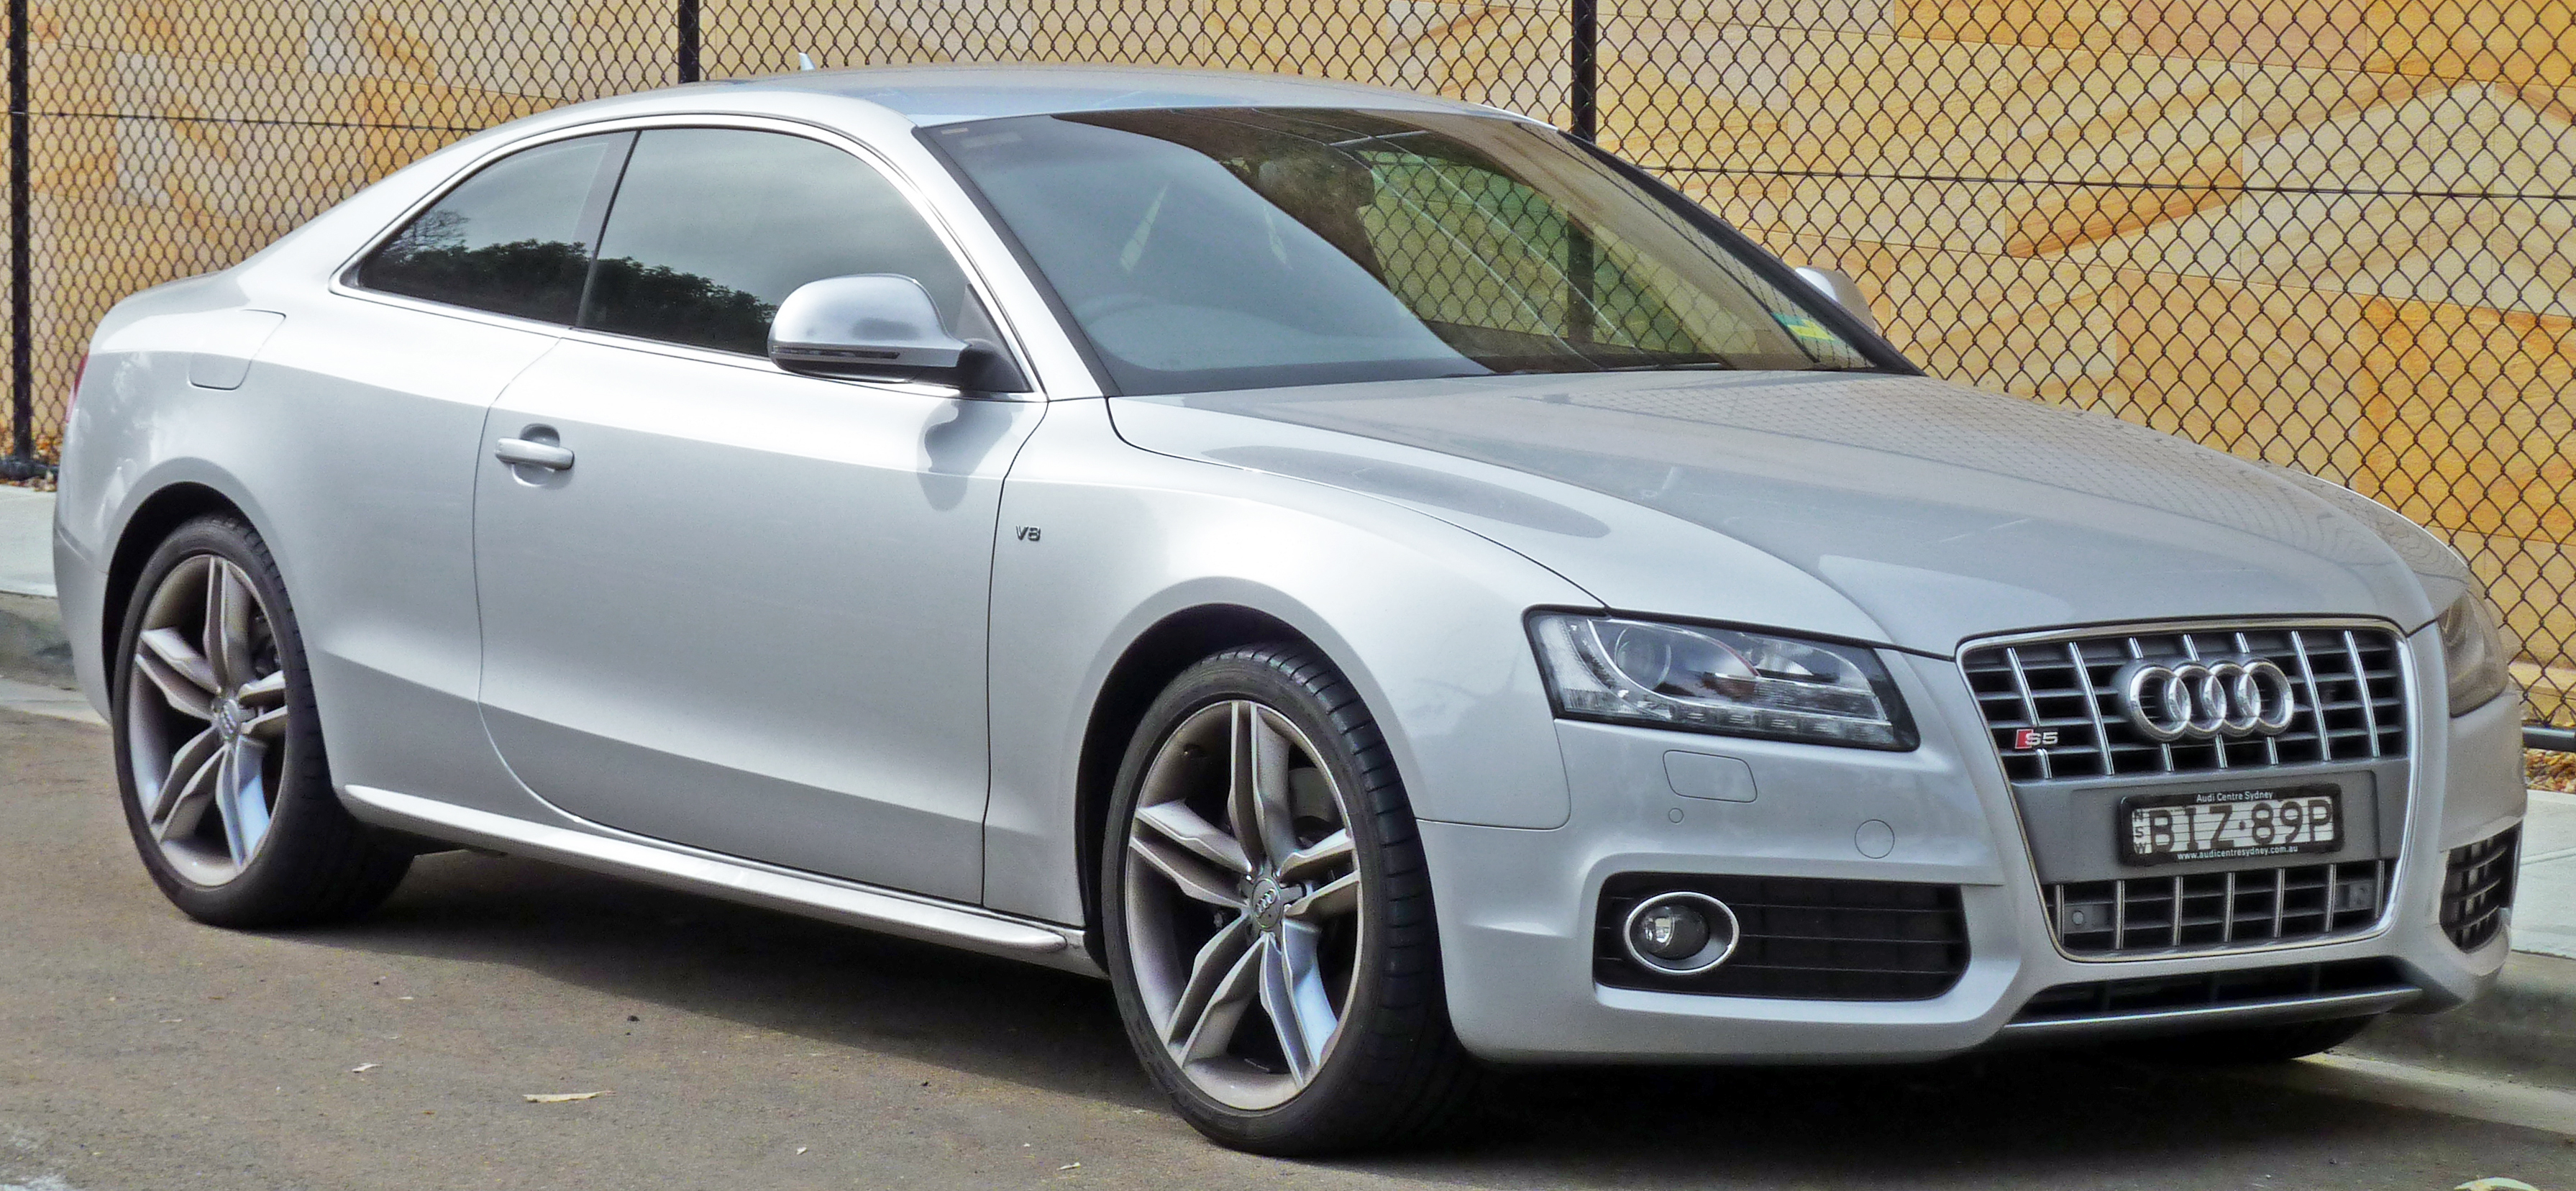 and audi new us sharpened models en used coupe all european design model boast releases images